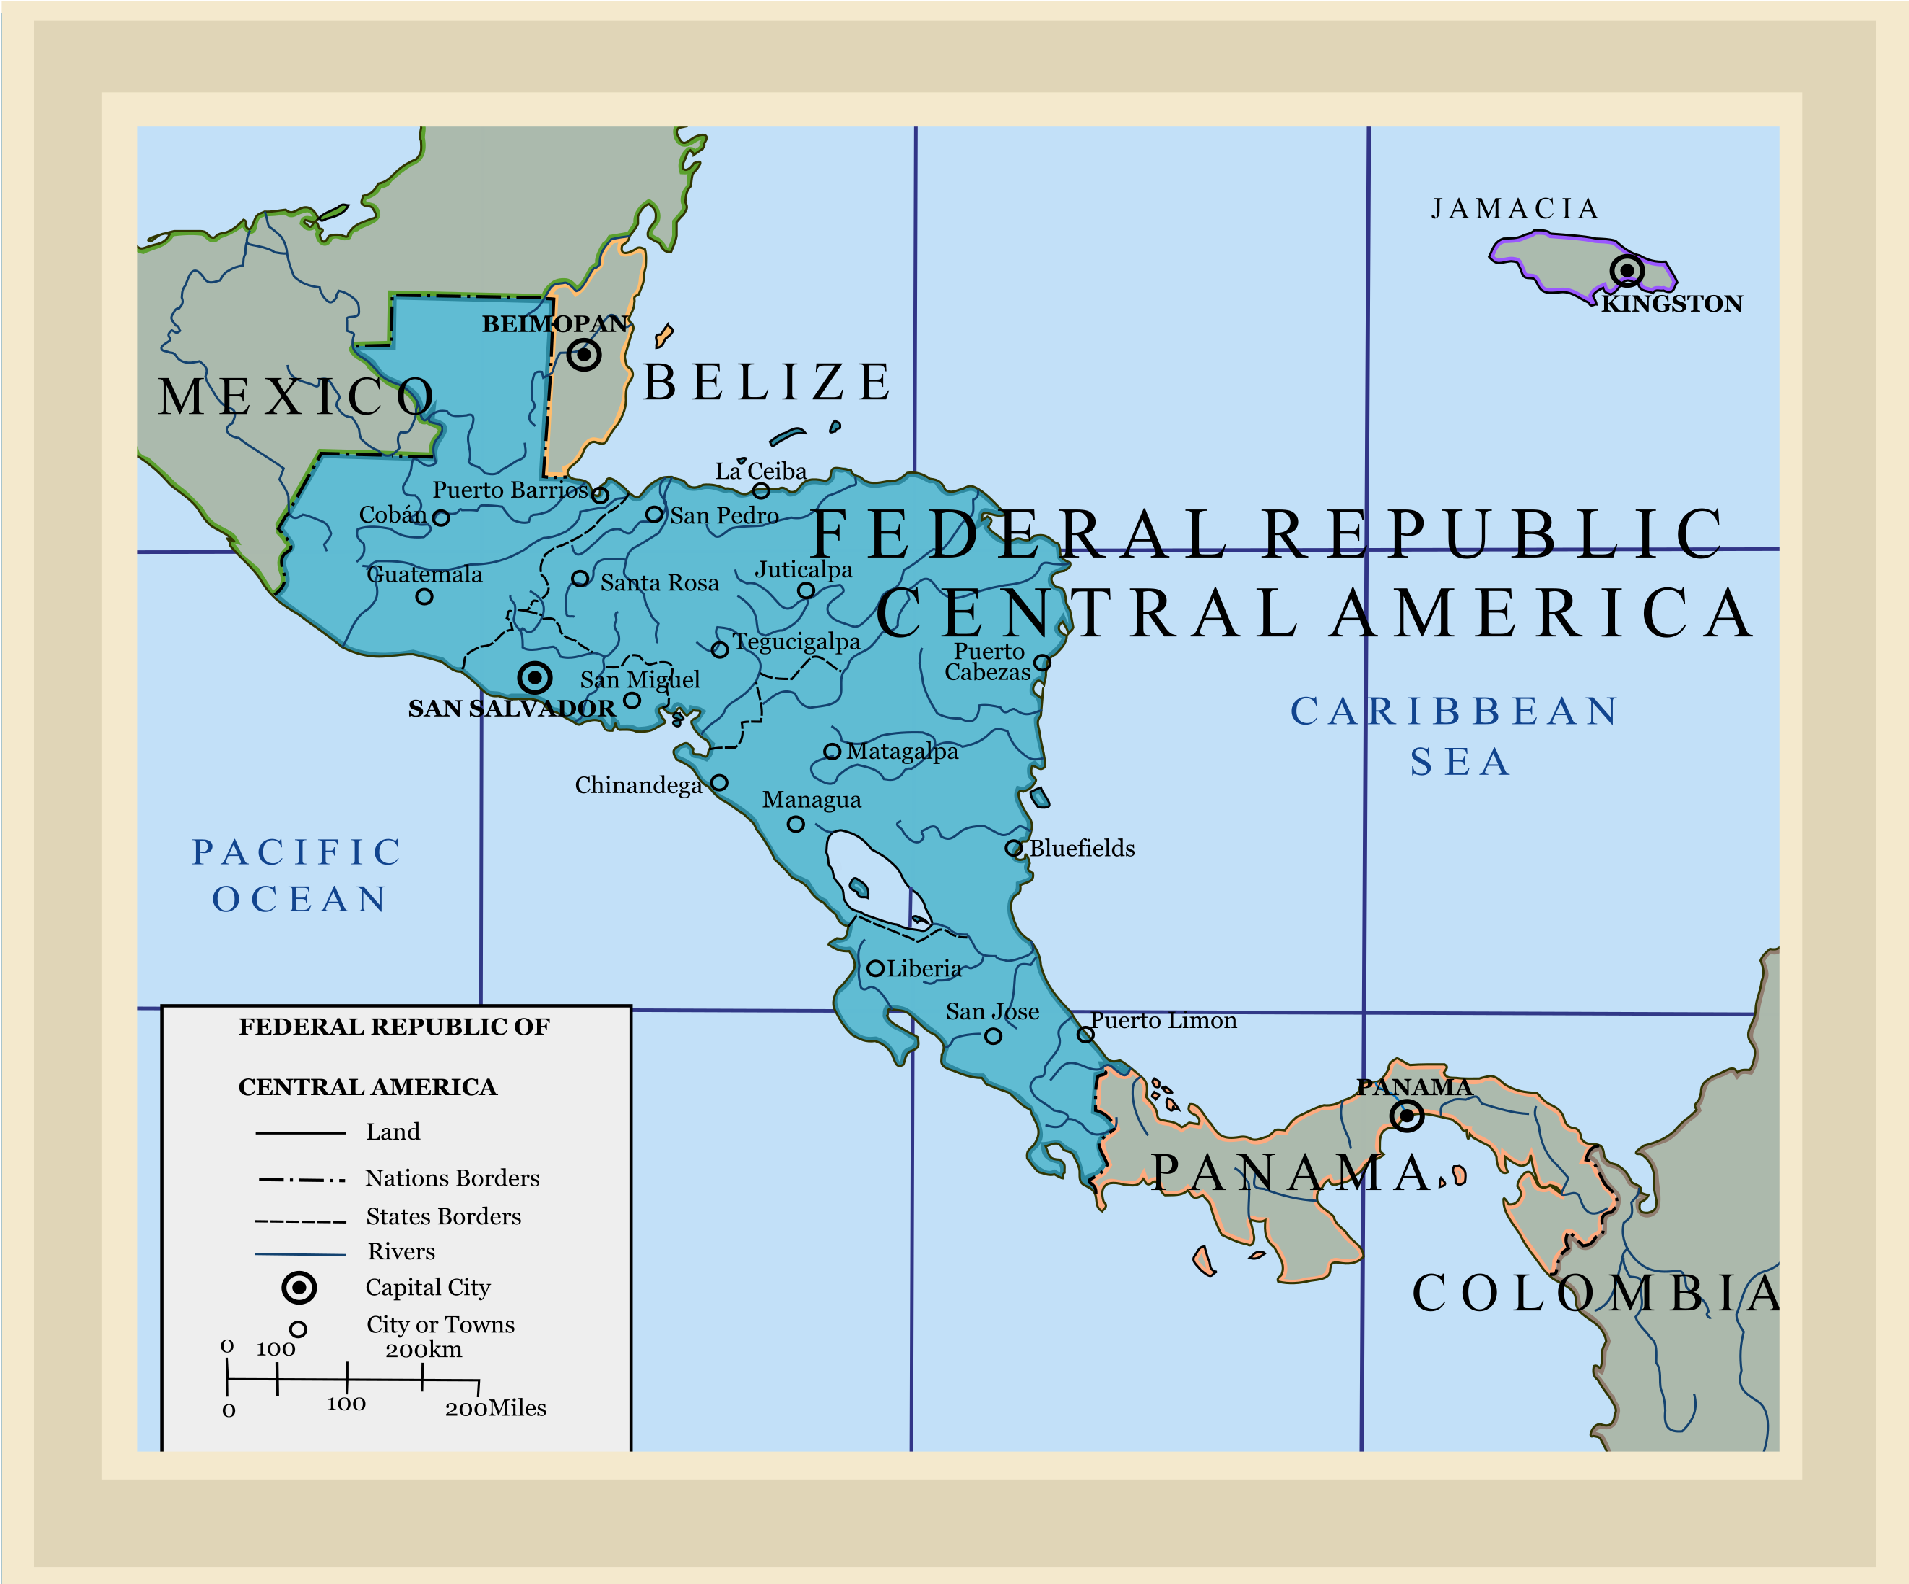 CentralAmerica(smll).png